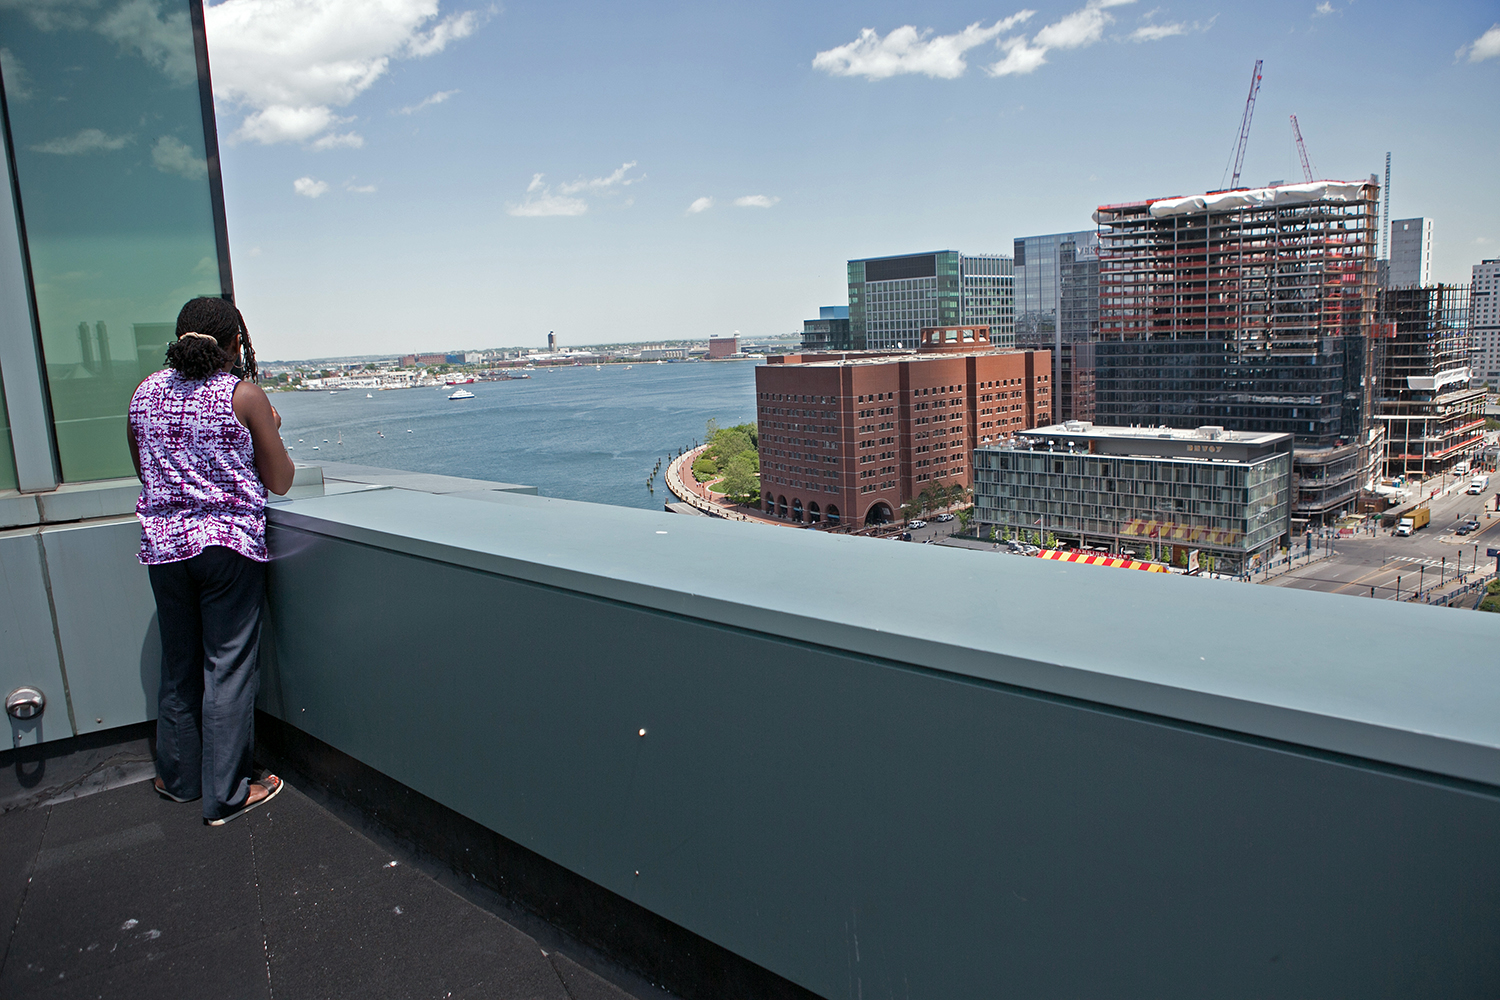 Movita Harrigan looks out on a new development in South Boston, June 6, 2016. (Photo by Lauren Owens Lambert/GroundTruth)